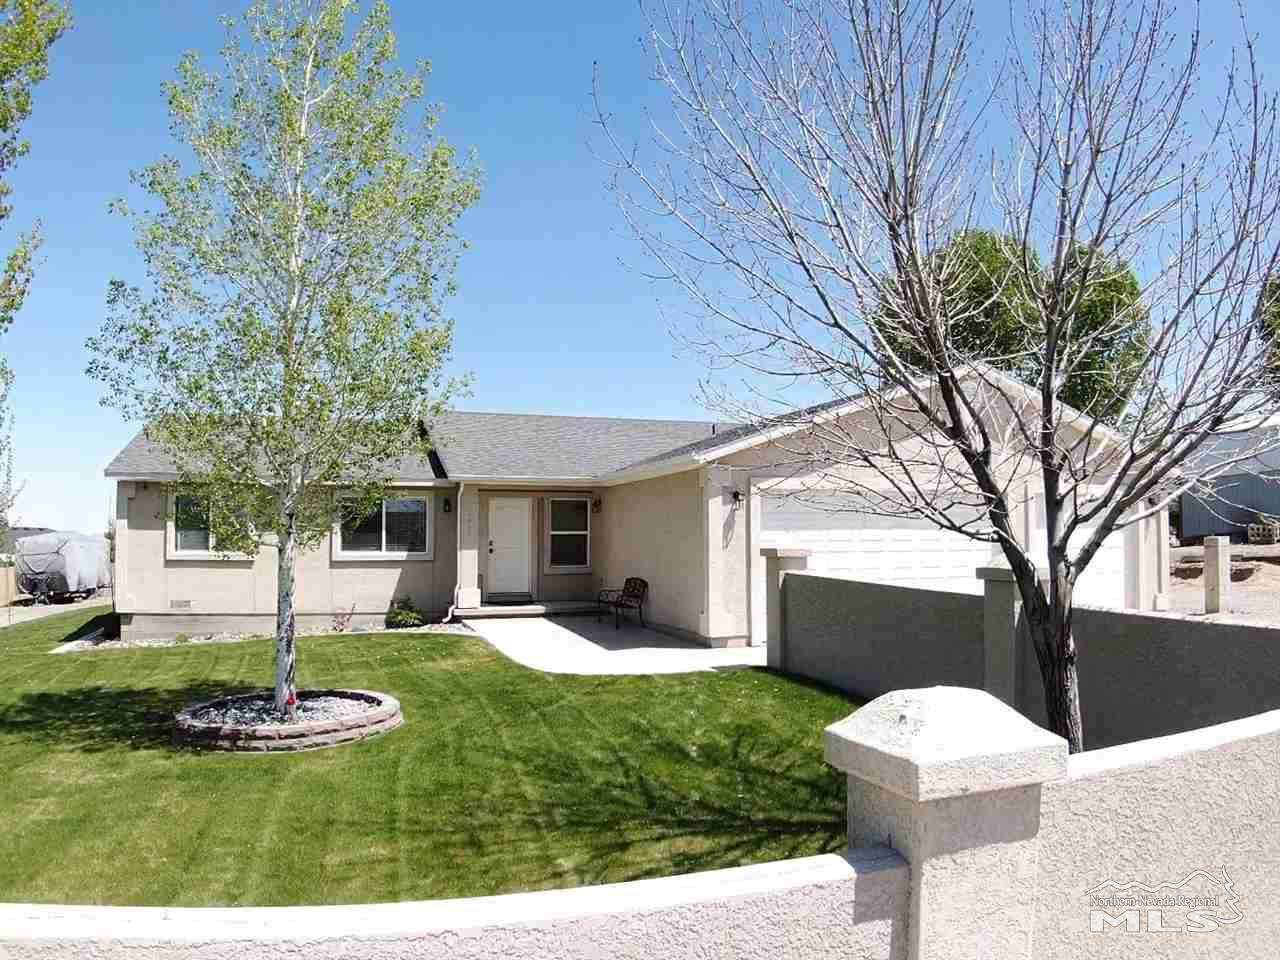 5865 Water Canyon Rd - Photo 1